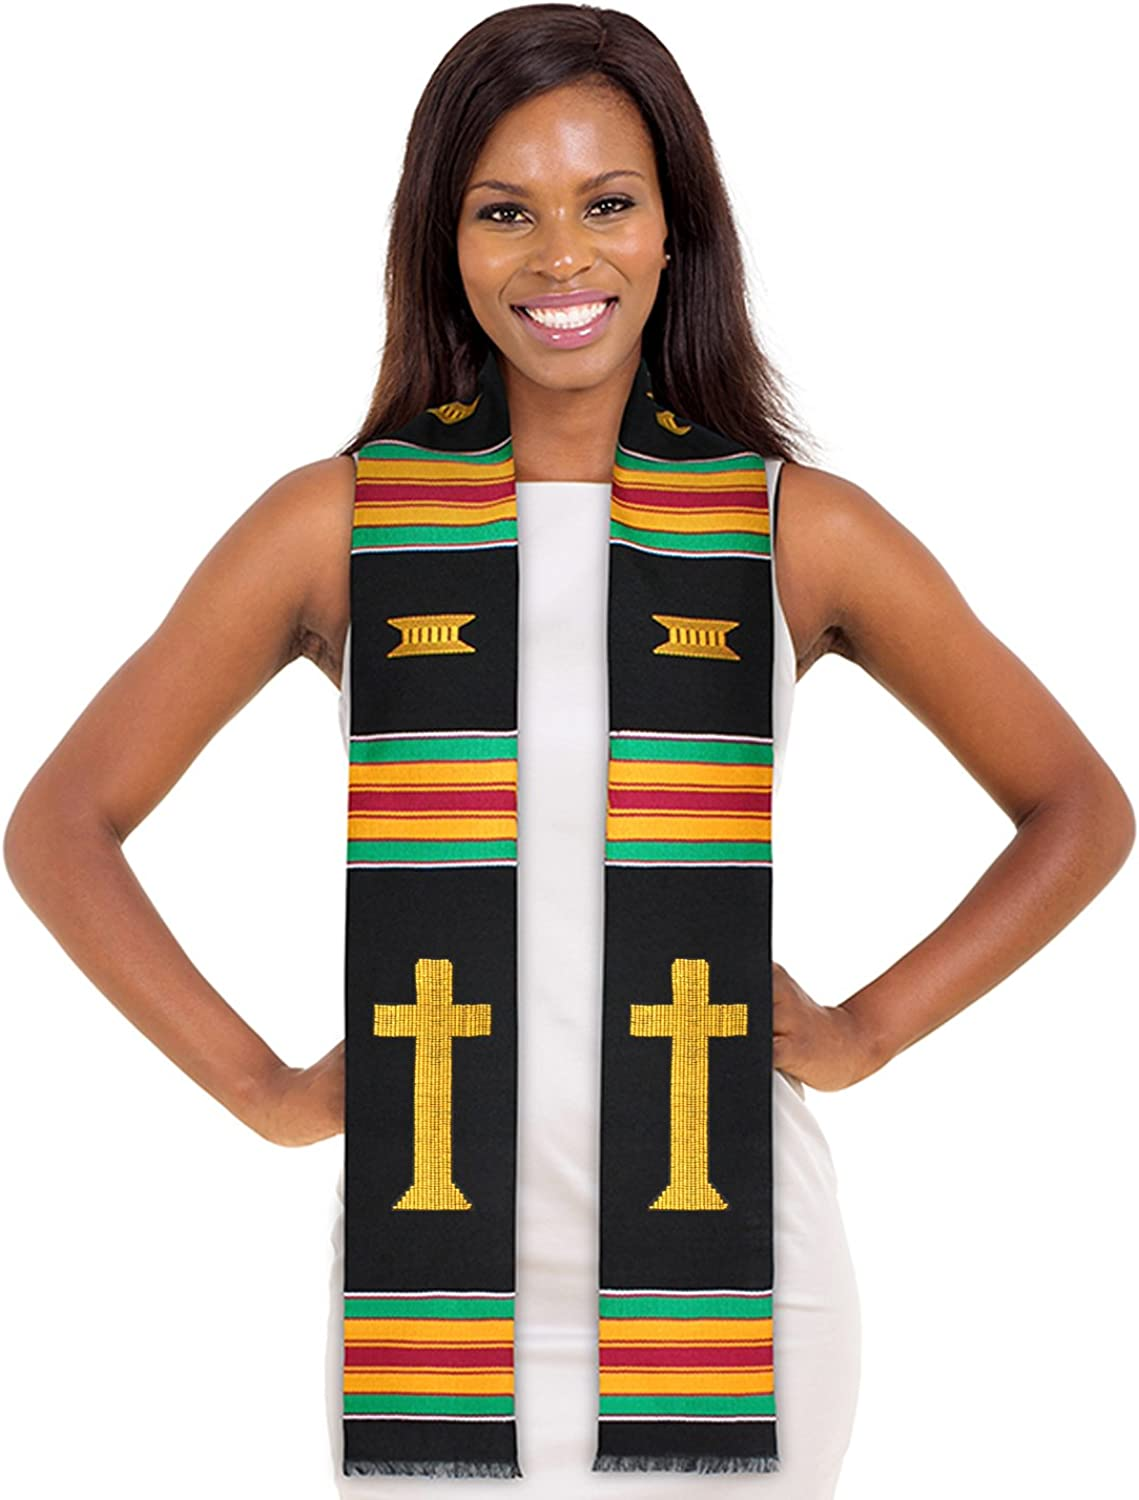 ADVANSYNC Christian Kente Cloth Graduation Stole and Our Daily Bread Book